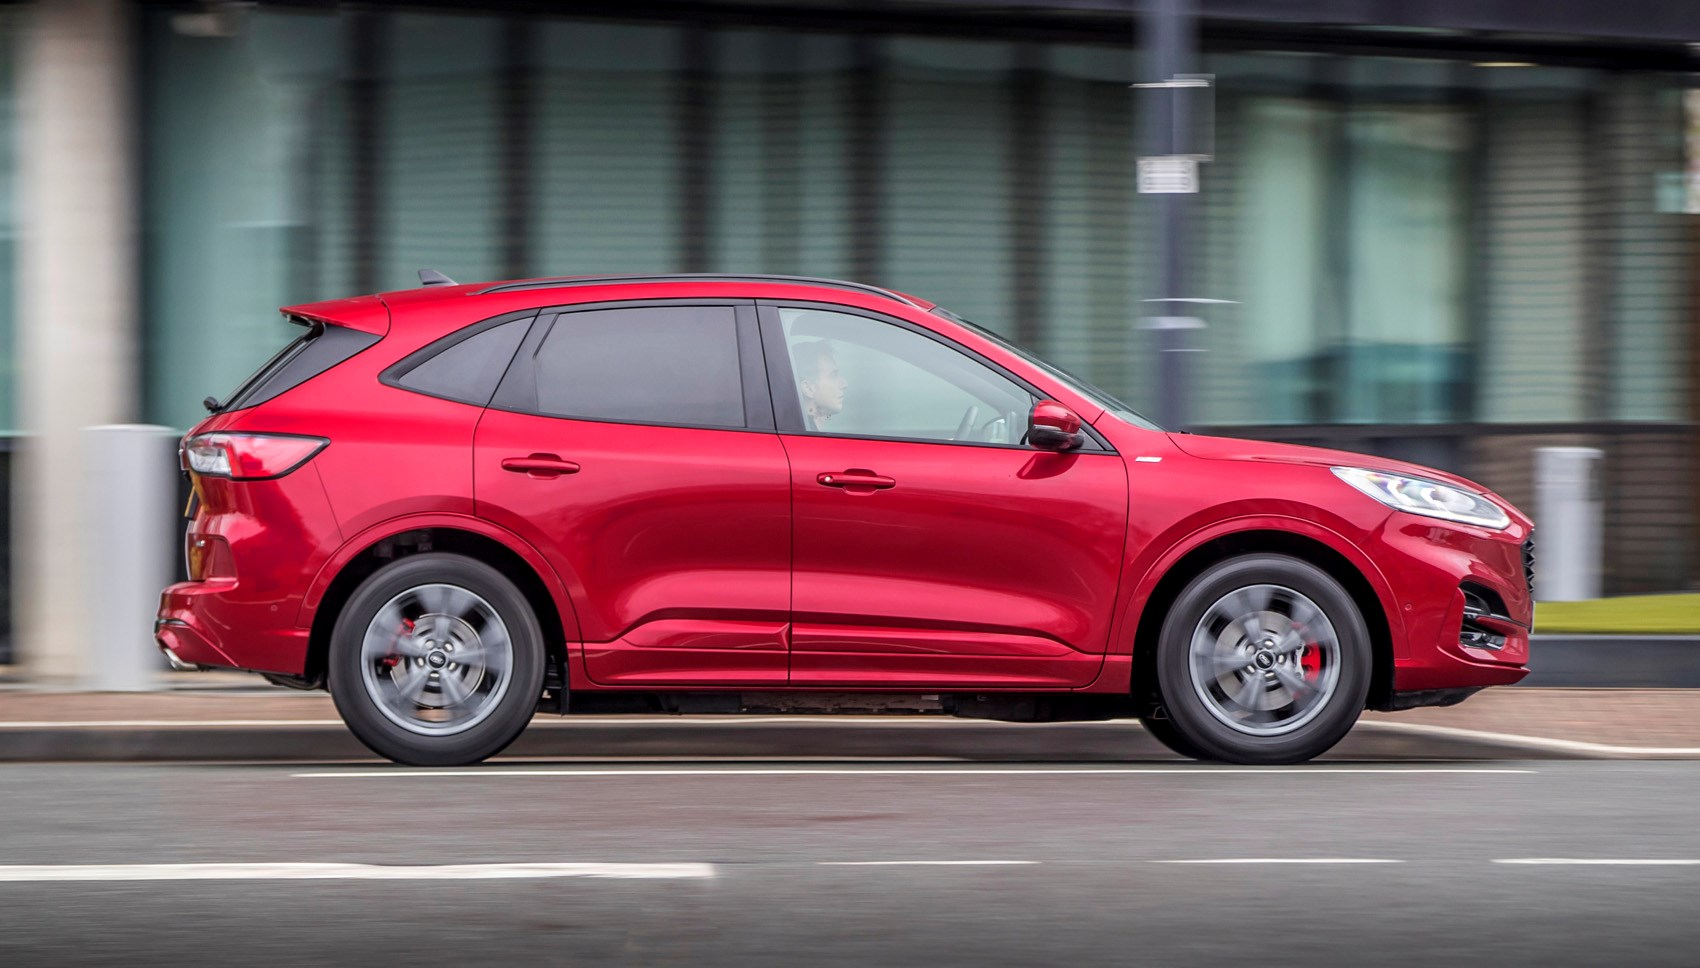 Lucid Red 2020 Ford Kuga ST-Line First Edition PHEV side elevation driving